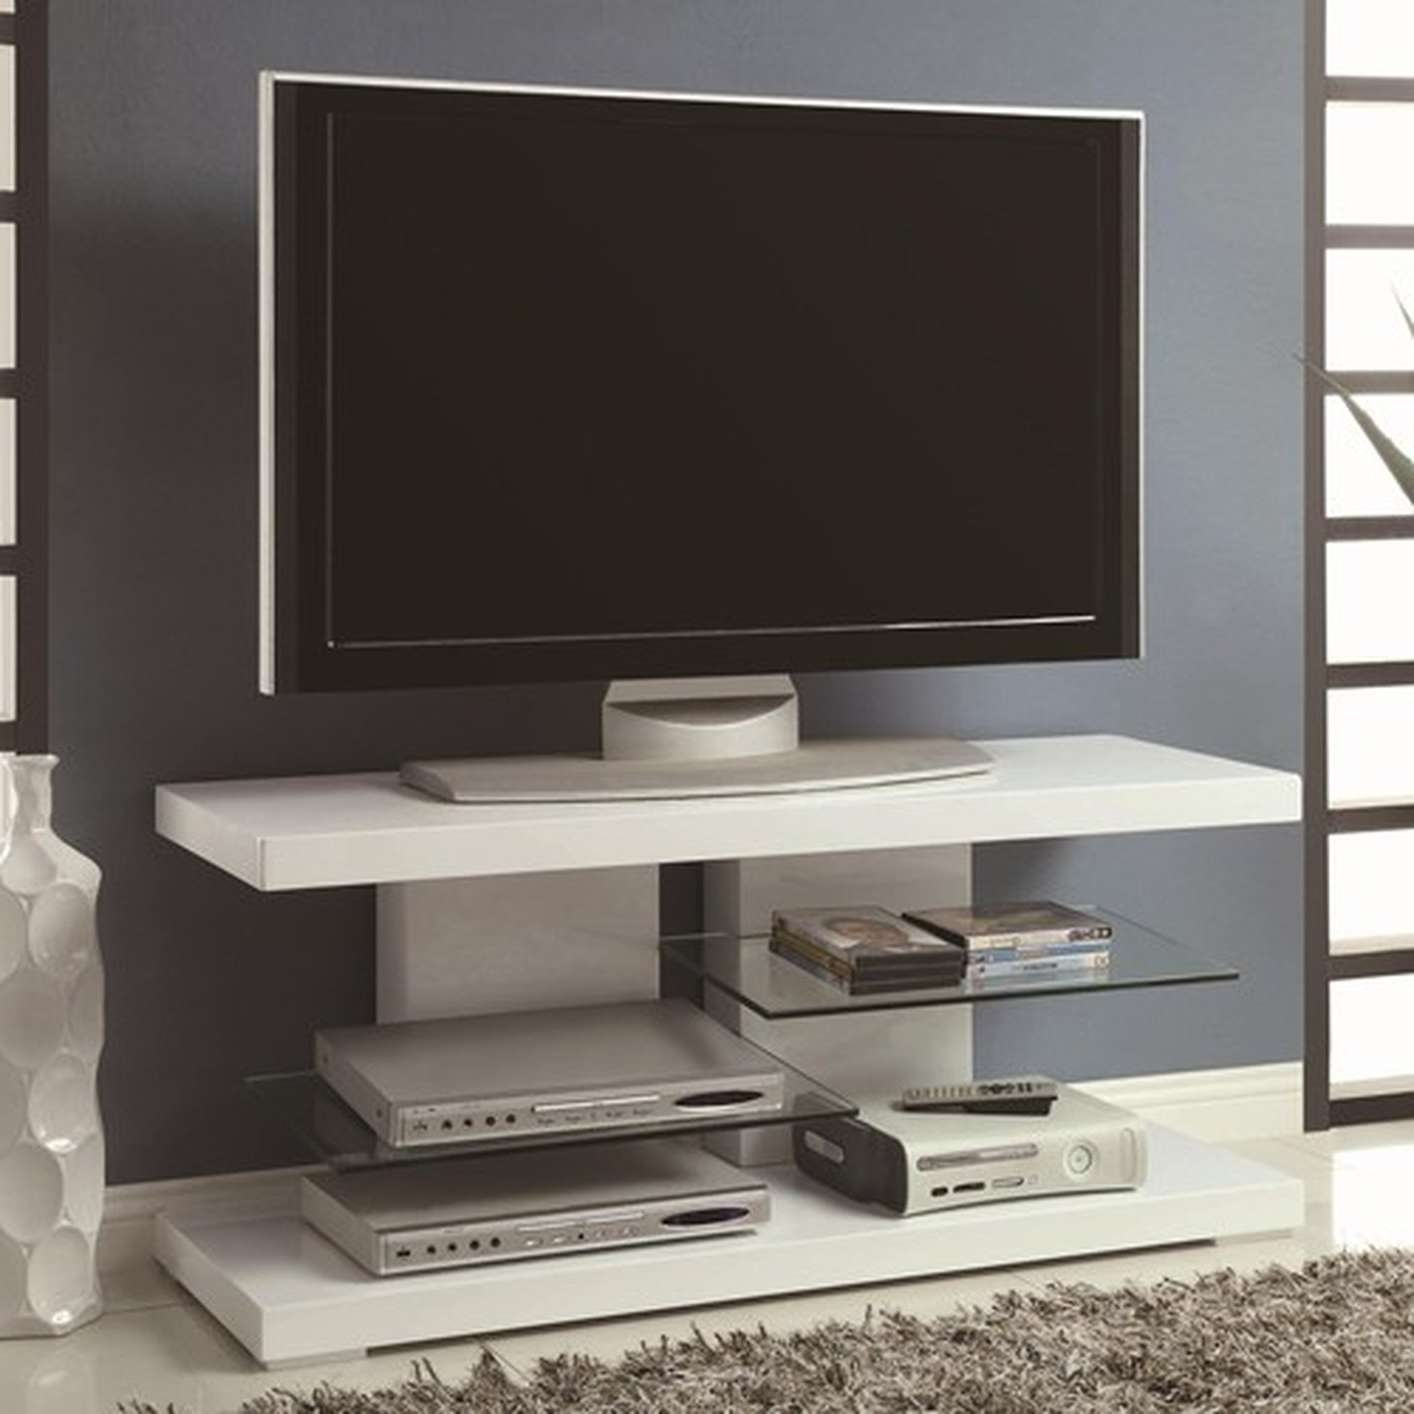 White Glass Tv Stand – Steal A Sofa Furniture Outlet Los Angeles Ca In Gloss White Tv Stands (View 14 of 15)